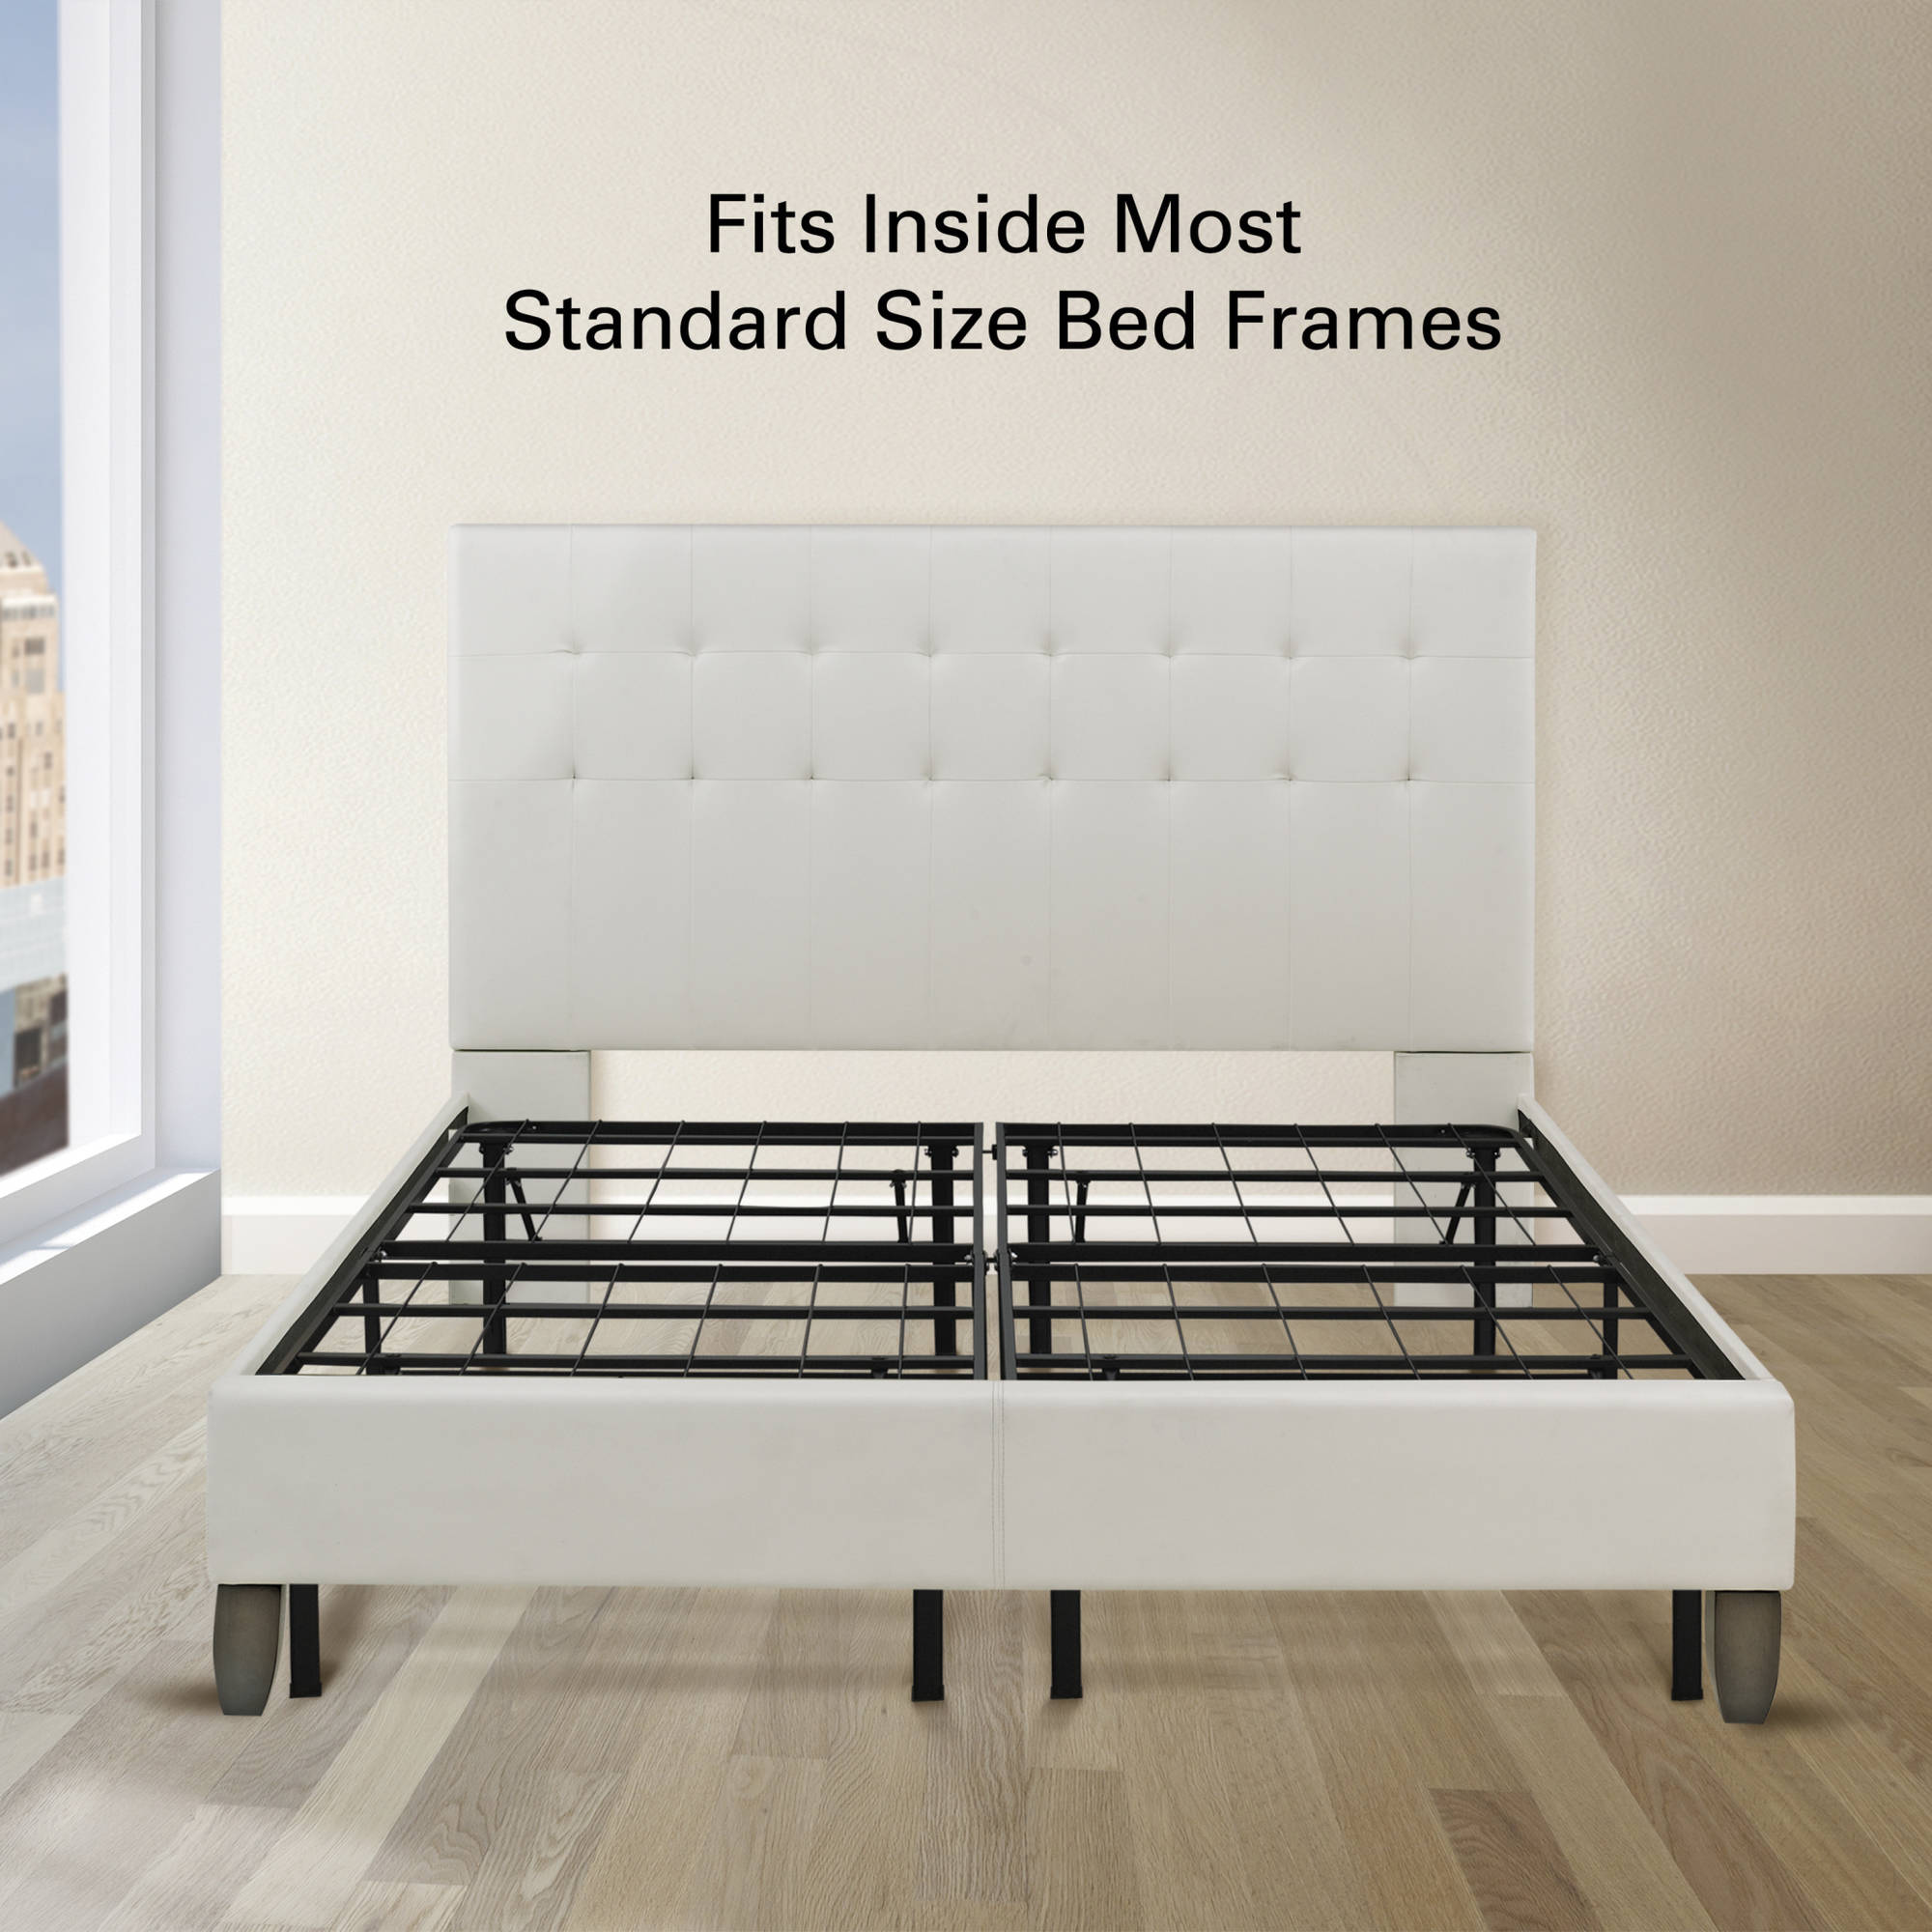 premier 14 high profile platform metal base foundation bed frame with under bed storage easy assembly multiple sizes walmartcom - Bed Frame For Boxspring And Mattress